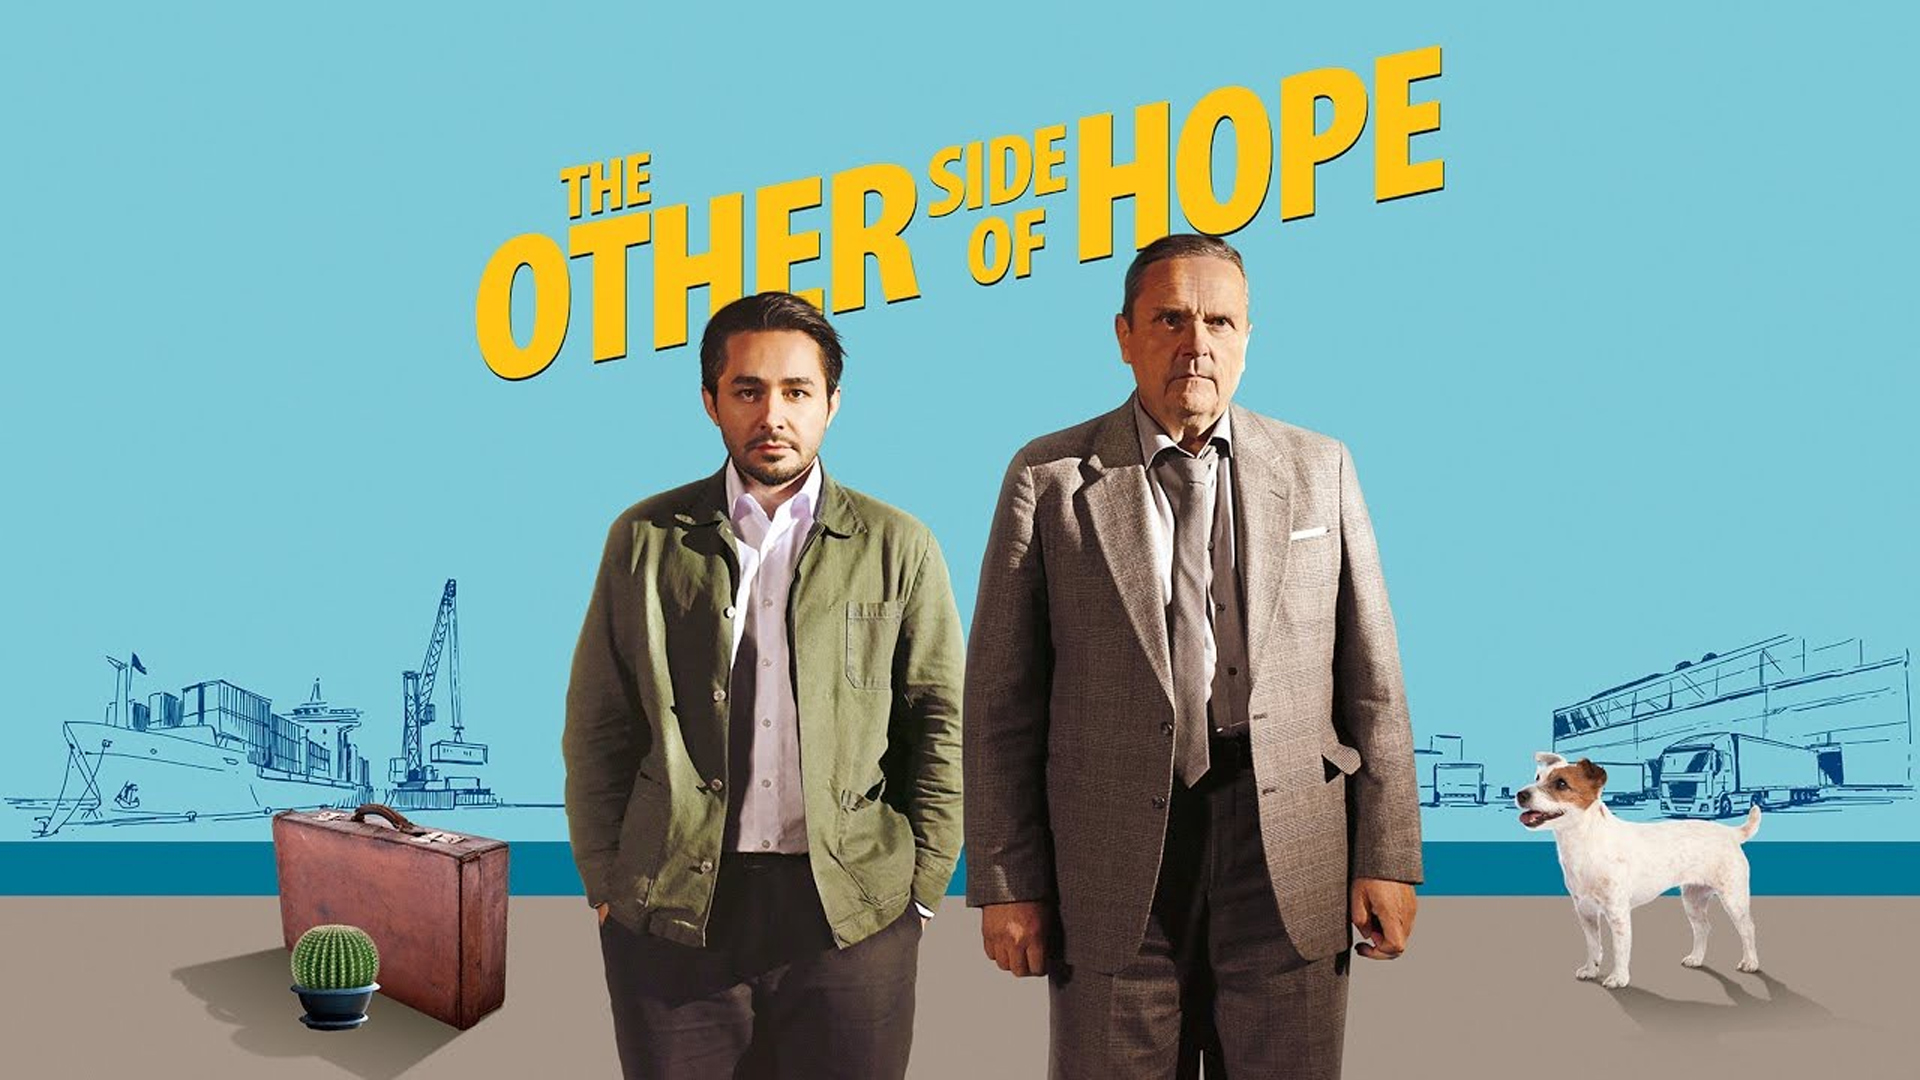 Movie poster for The Other Side of Hope